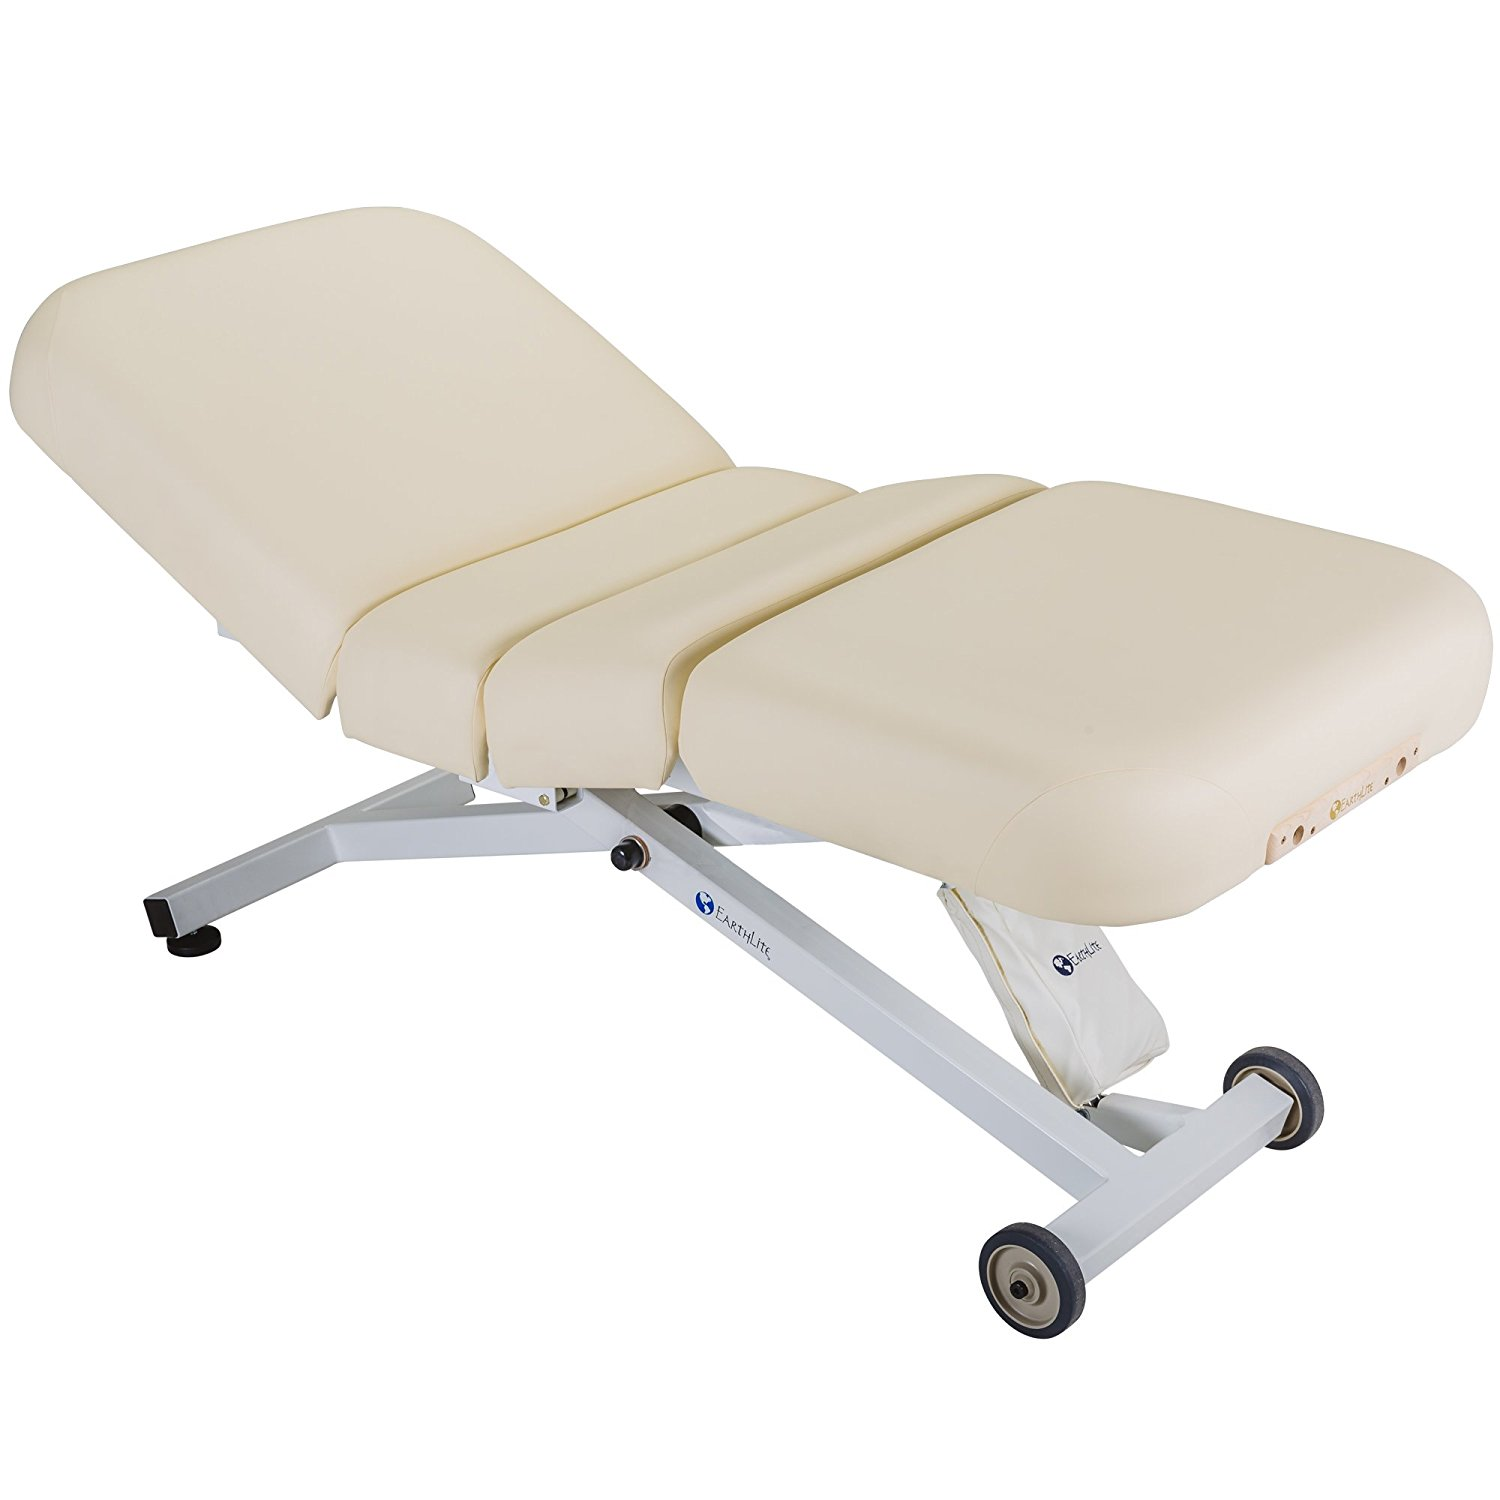 "EARTHLITE Ellora Electric Lift Salon Top Massage Table - Most Popular Spa Lift Massage Table, Comfortable & Reliable, Tattoo Table (30""x73"", 180lbs)"